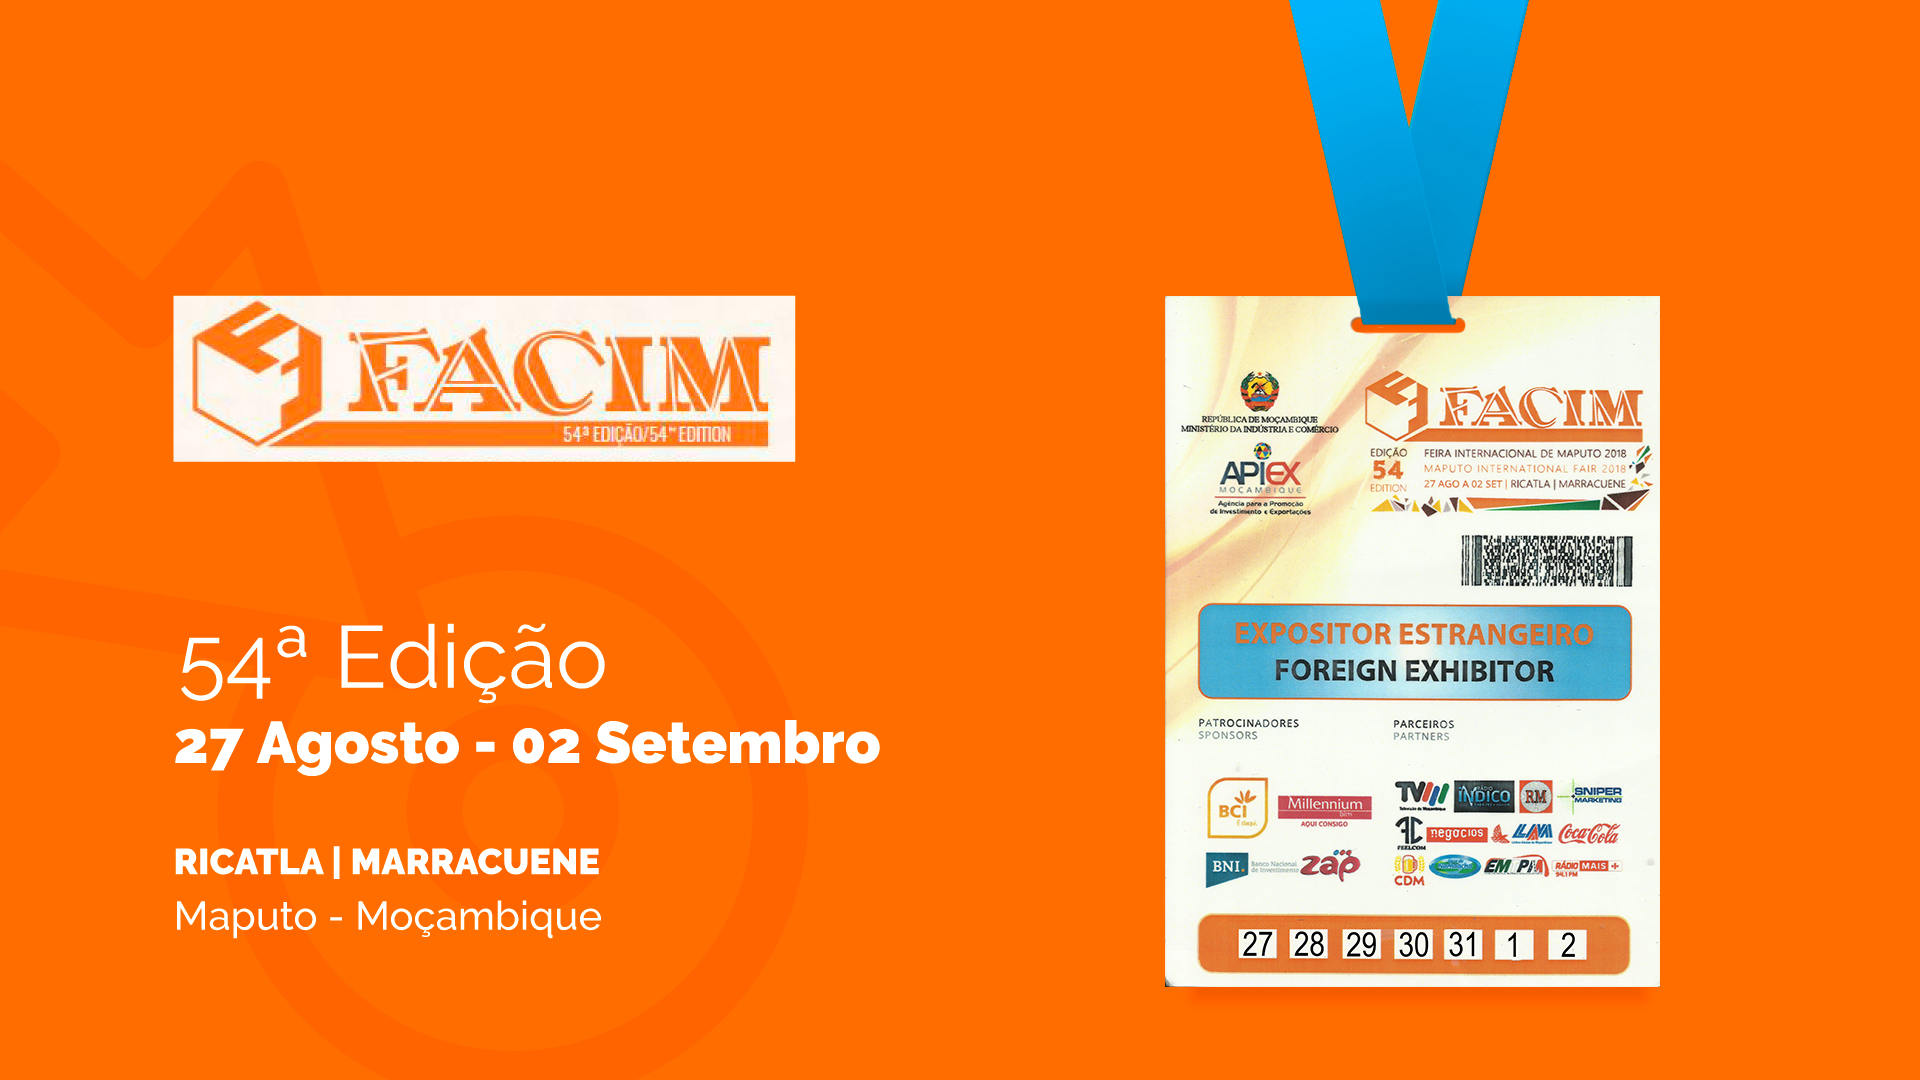 evento-site-facim2018 copy